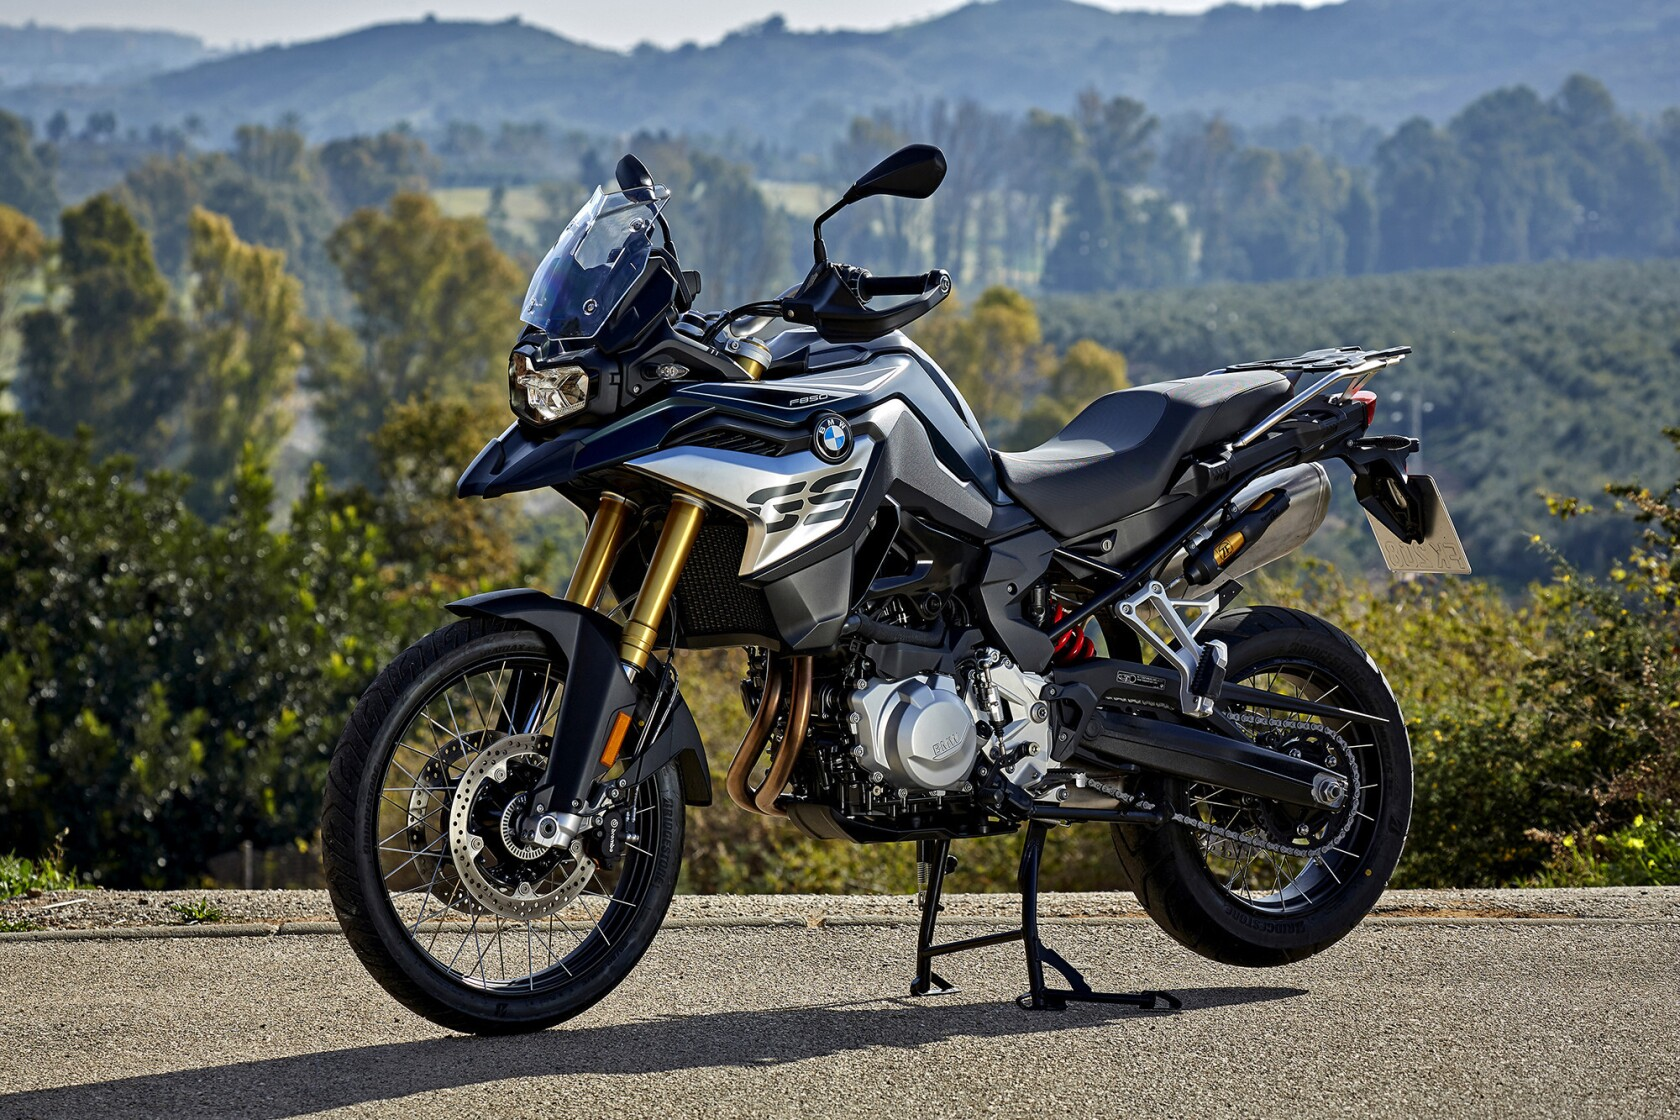 New BMW and KTM motorcycles are very different, but meet at